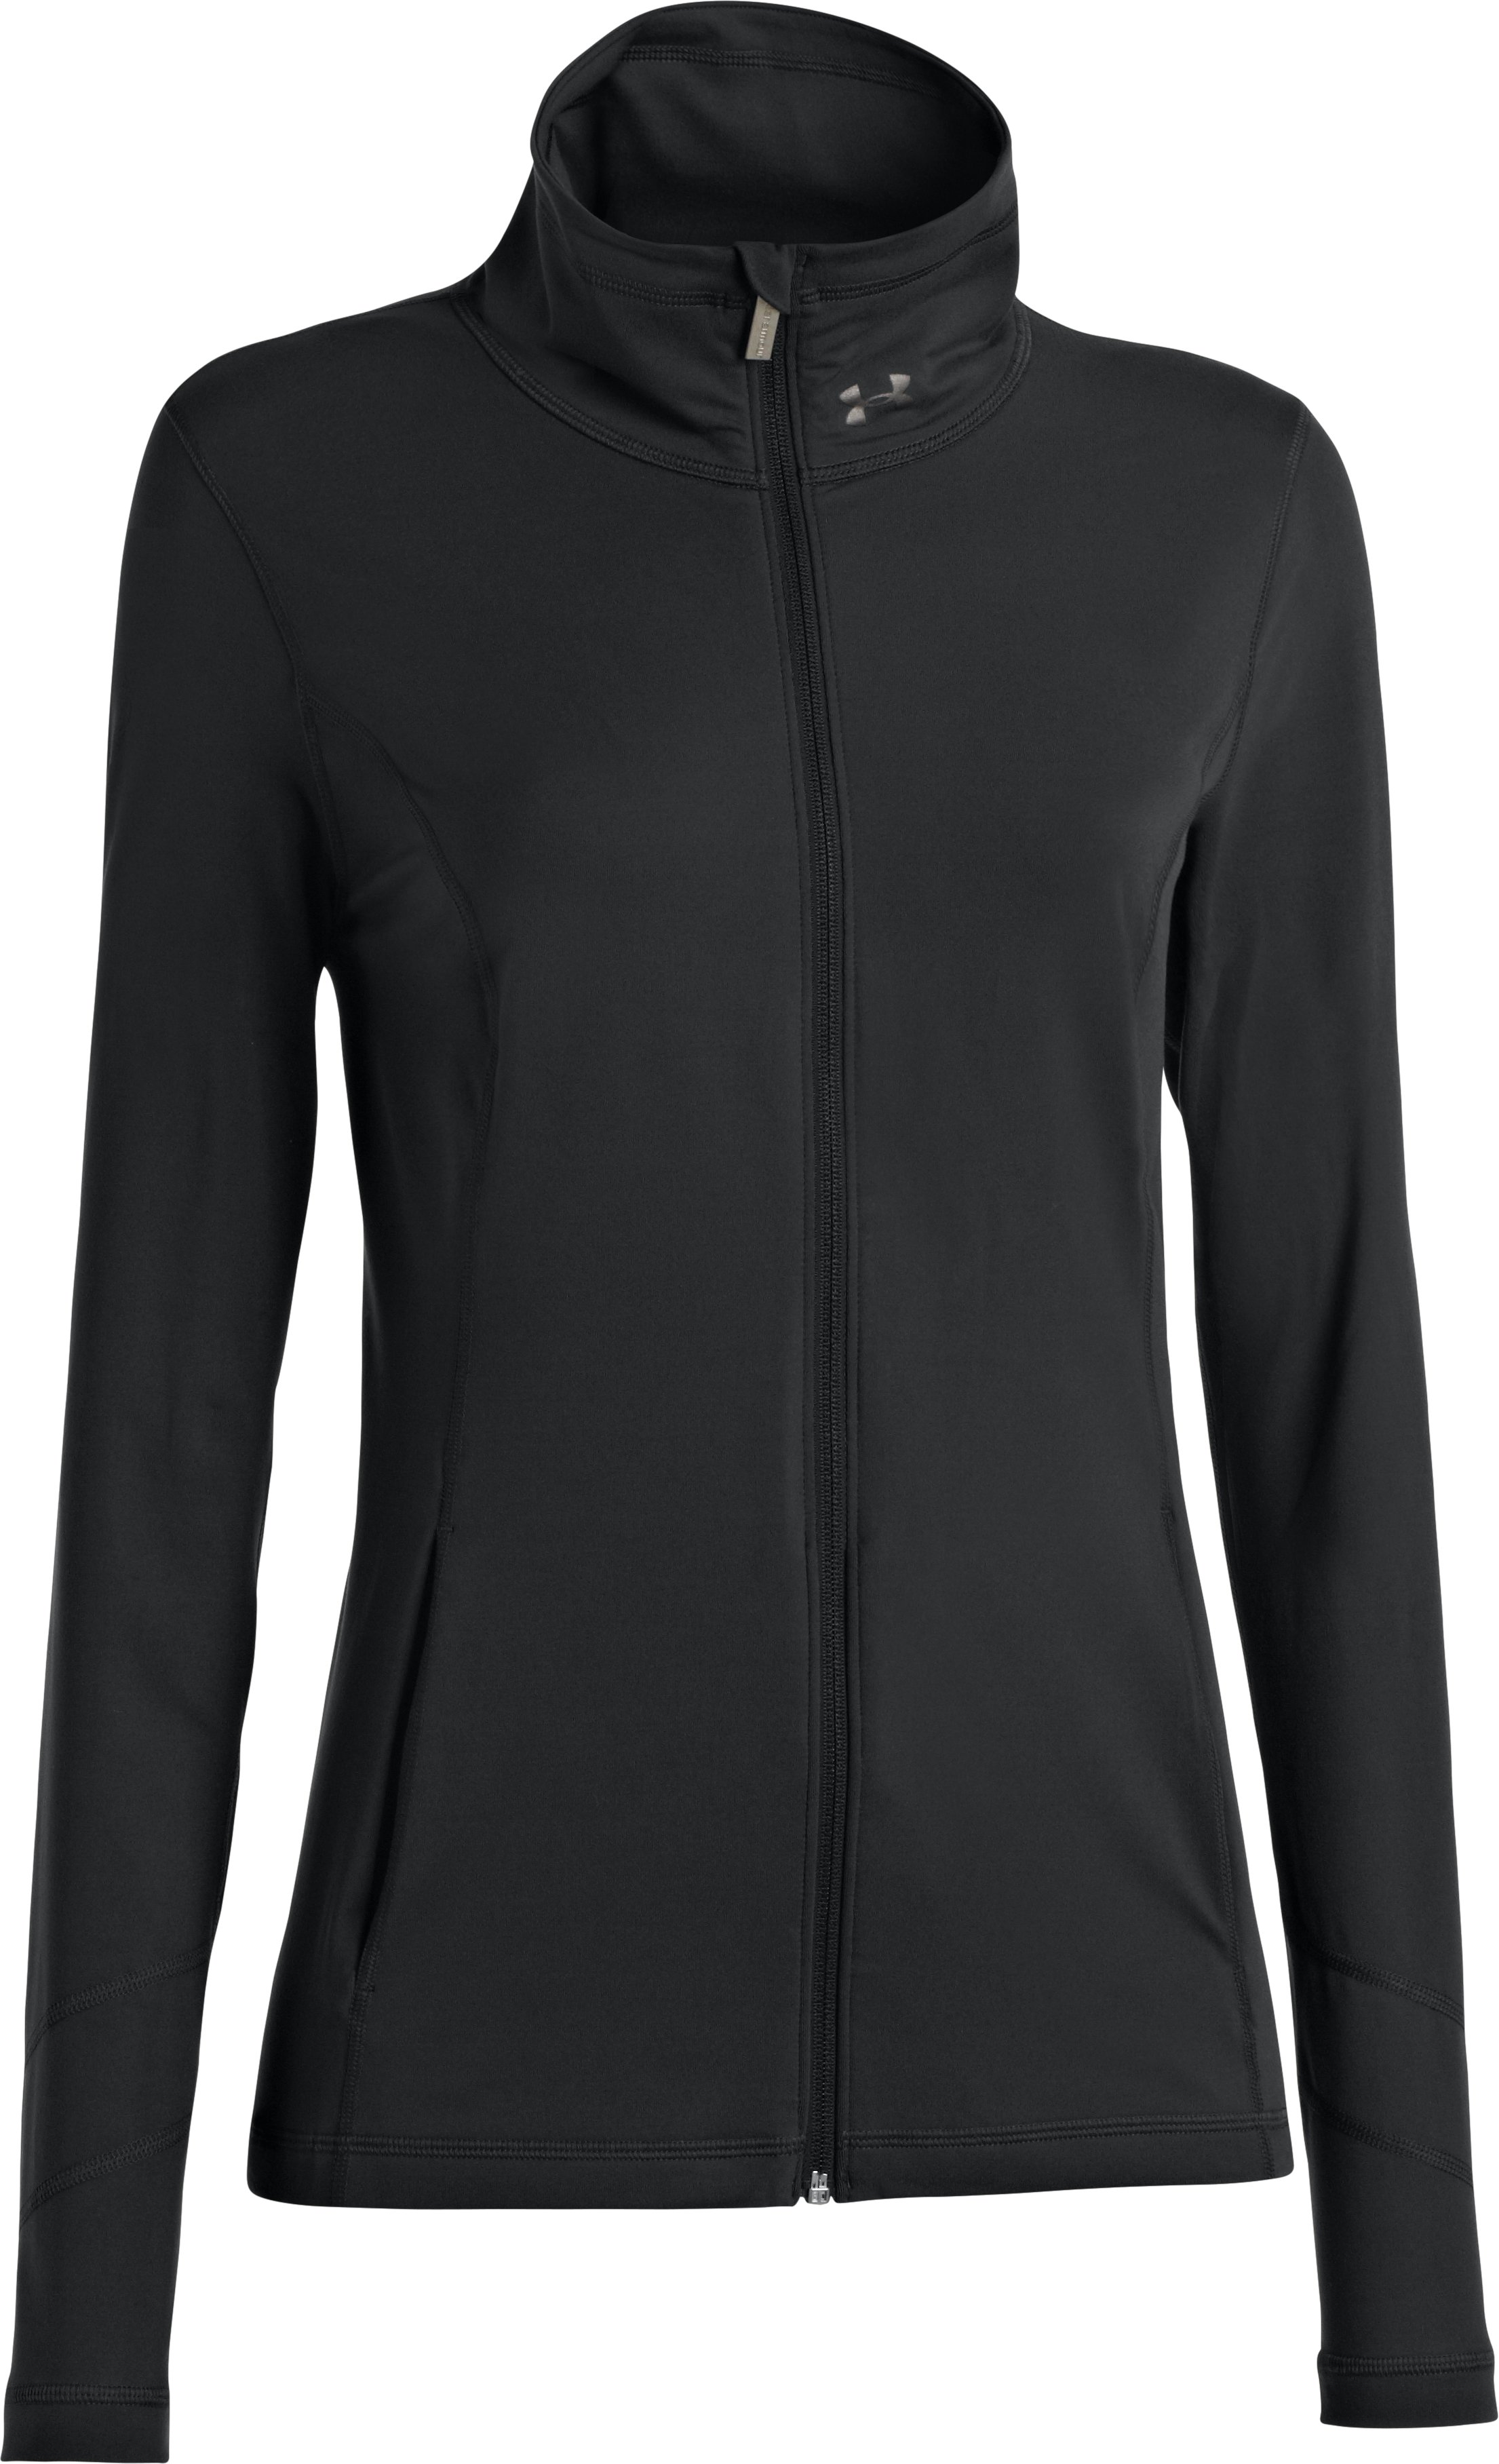 Women's UA Perfect Jacket, ANTHRACITE